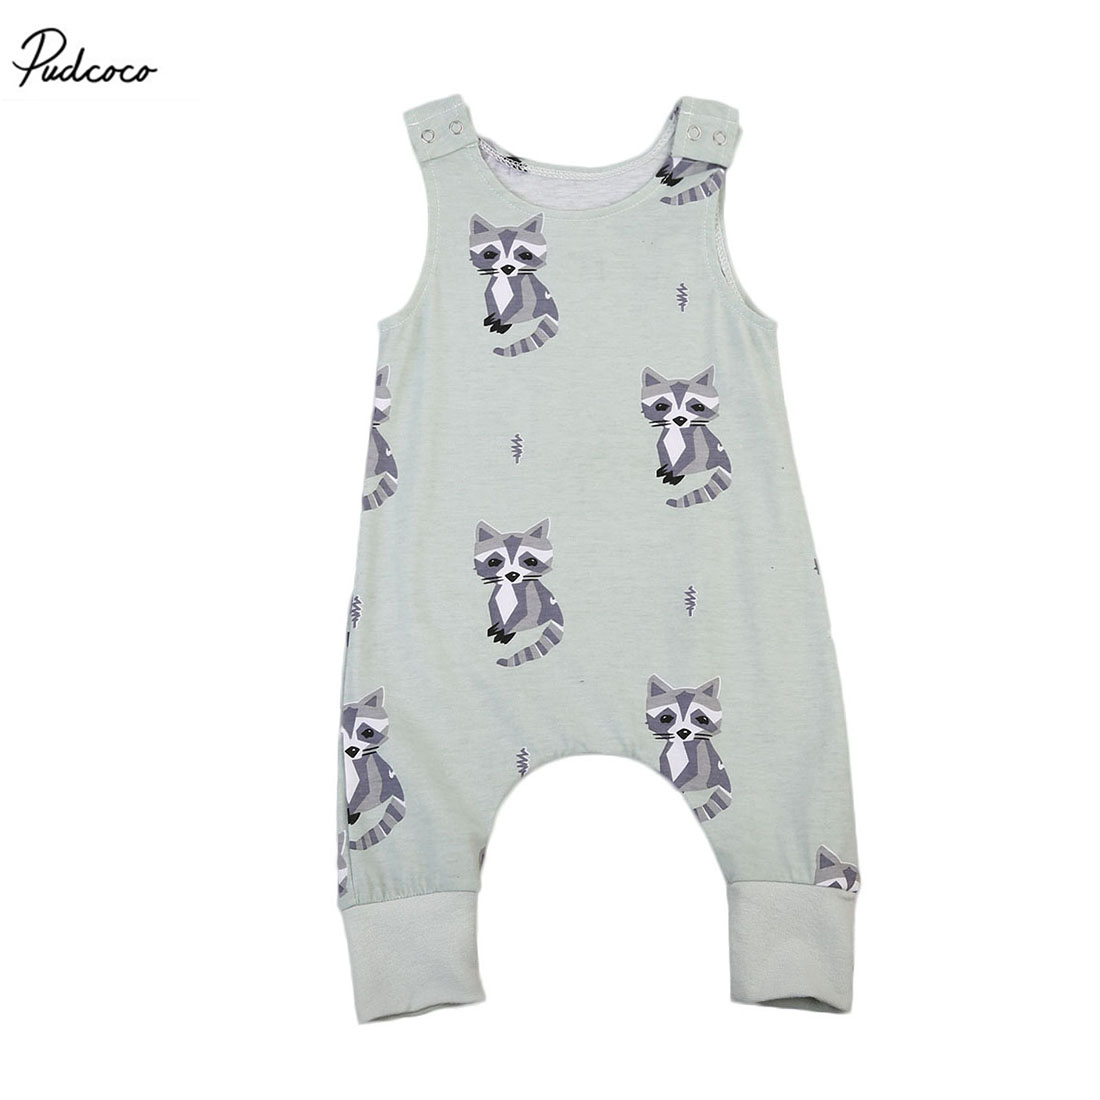 Cute 2017 New Summer Newborn Baby Boys Girls Racoon   Romper   Sleeveless Jumpsuit Outfits Clothes Set